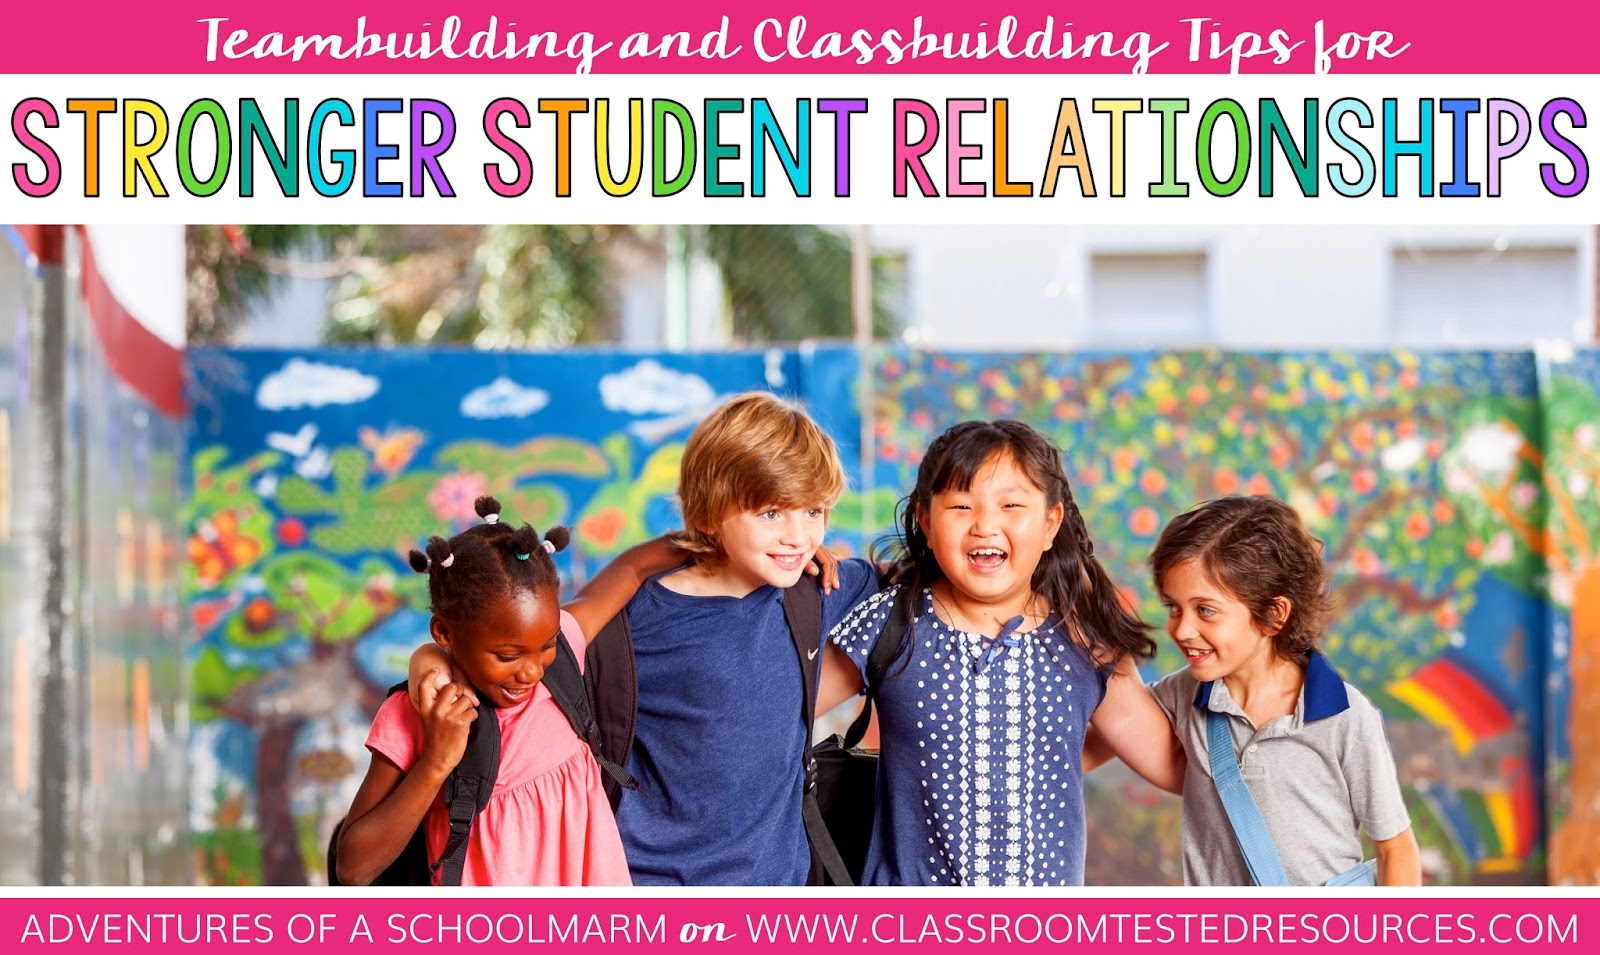 Teambuilding and Classbuilding ideas to help your students feel valued and important to the class.